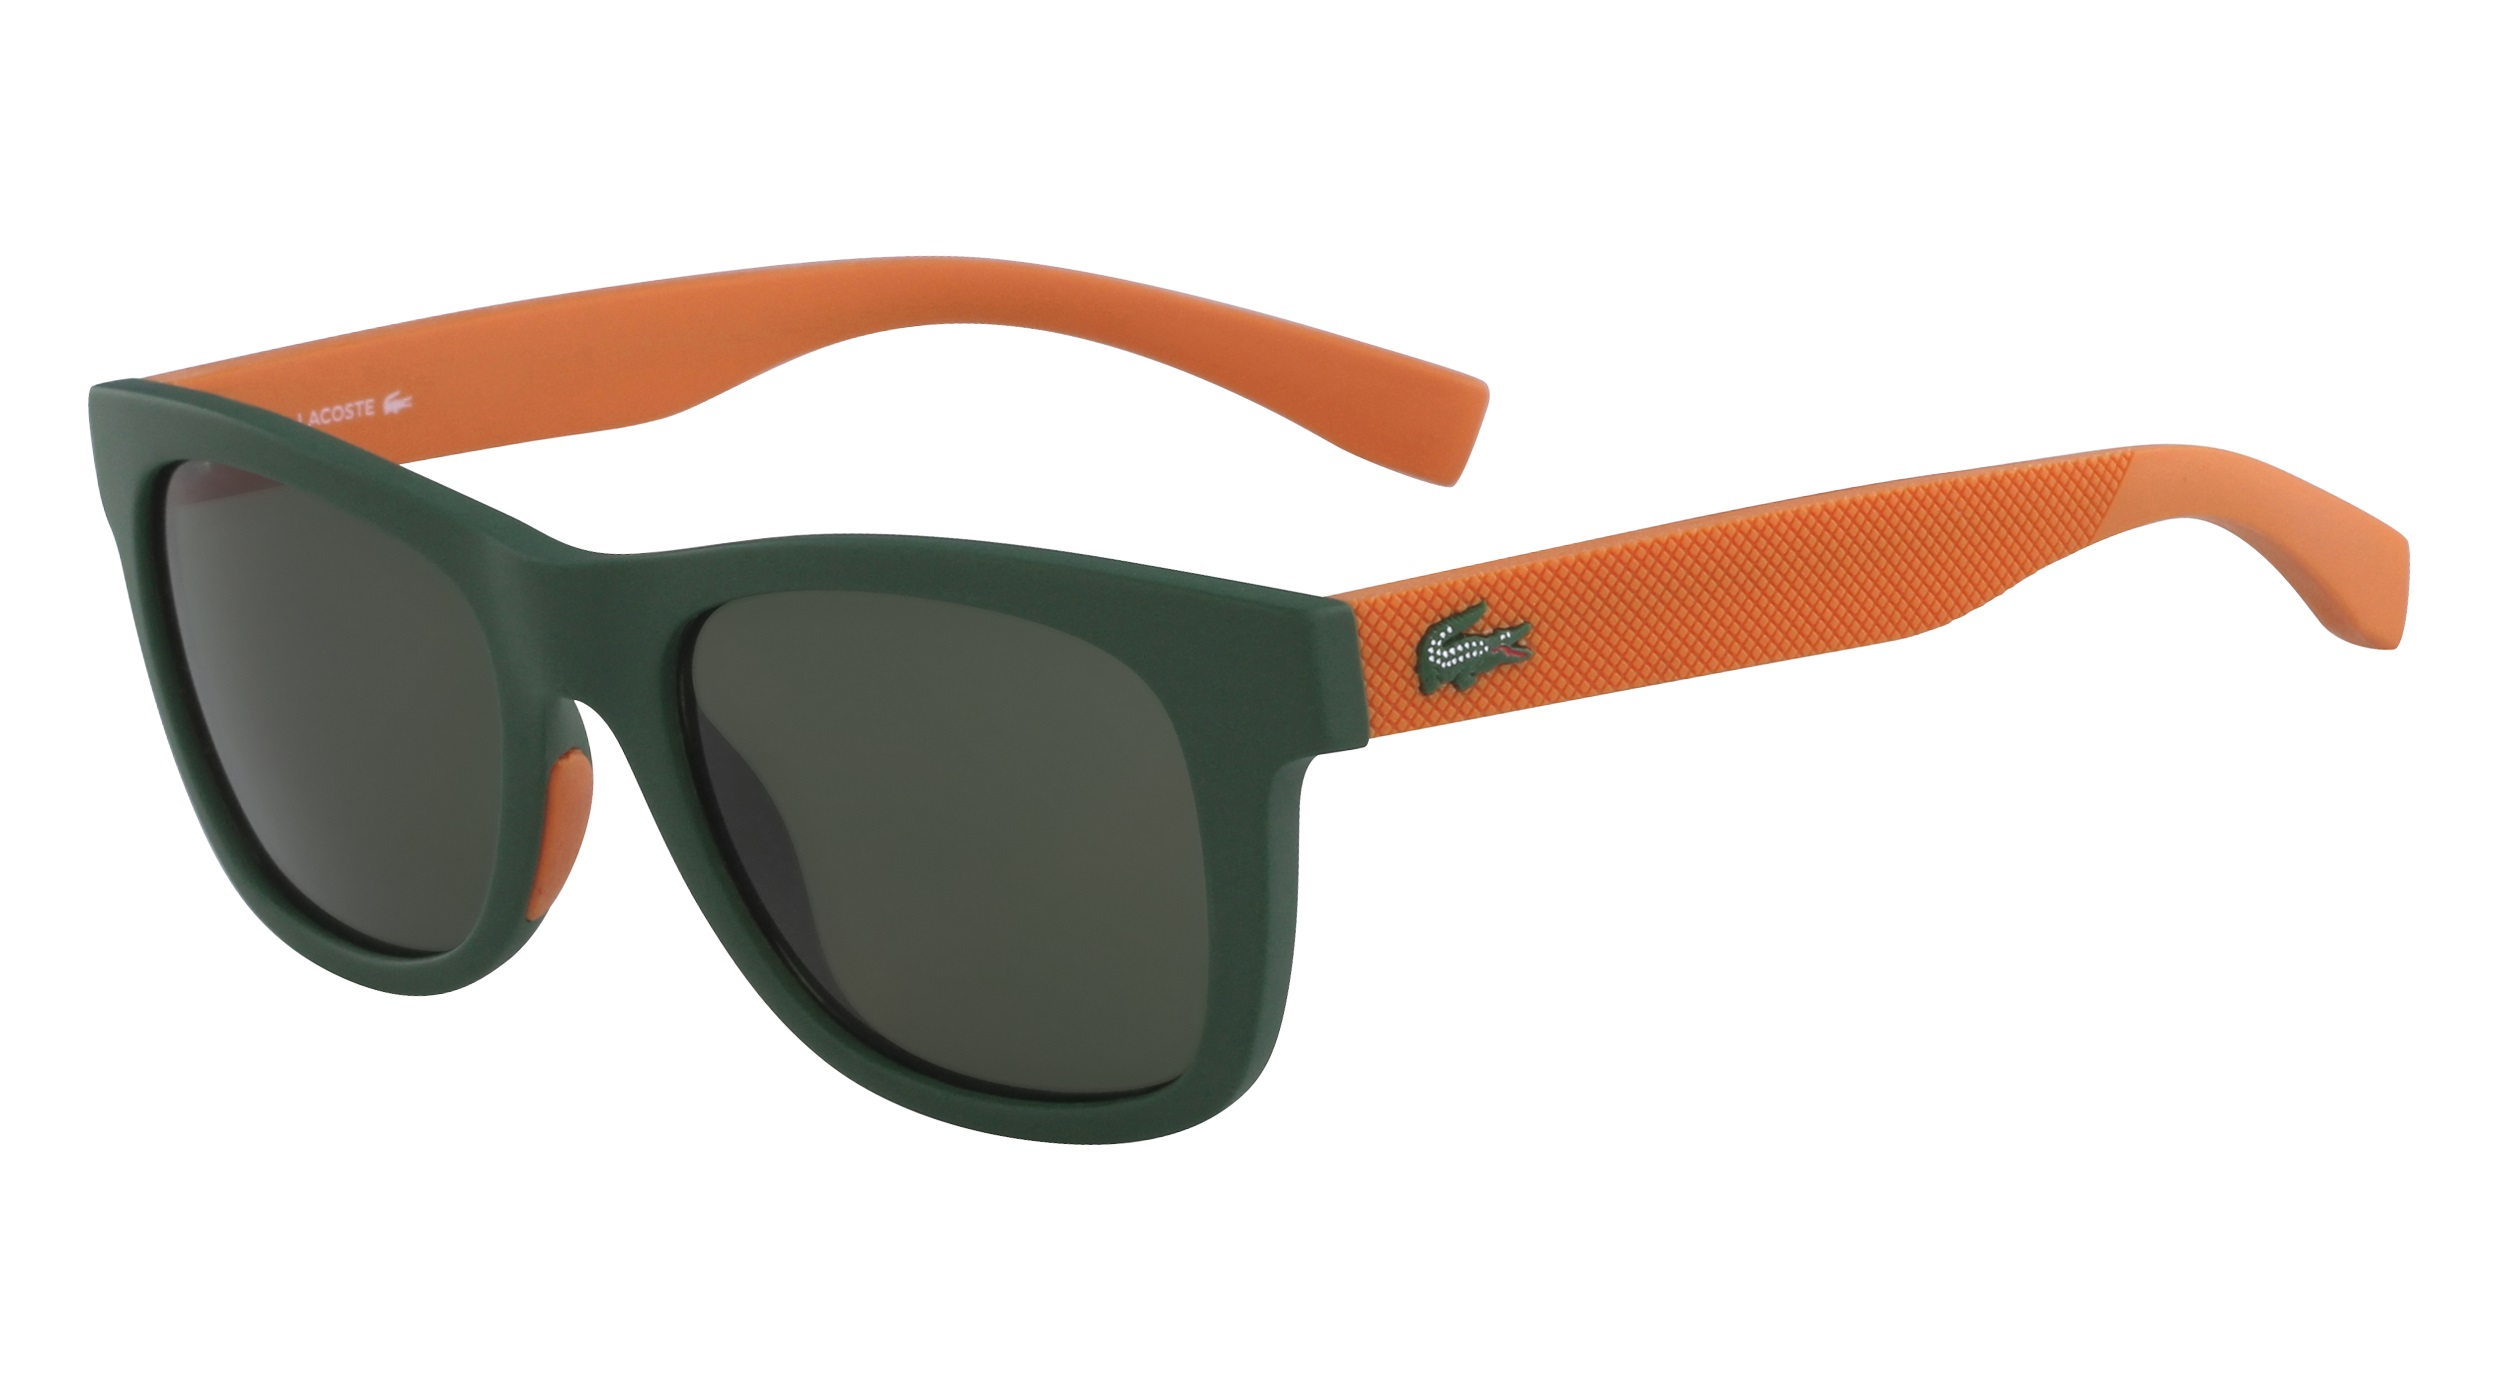 dba5b33545fe Kids Sunglasses - Green Lacoste - Optiwow